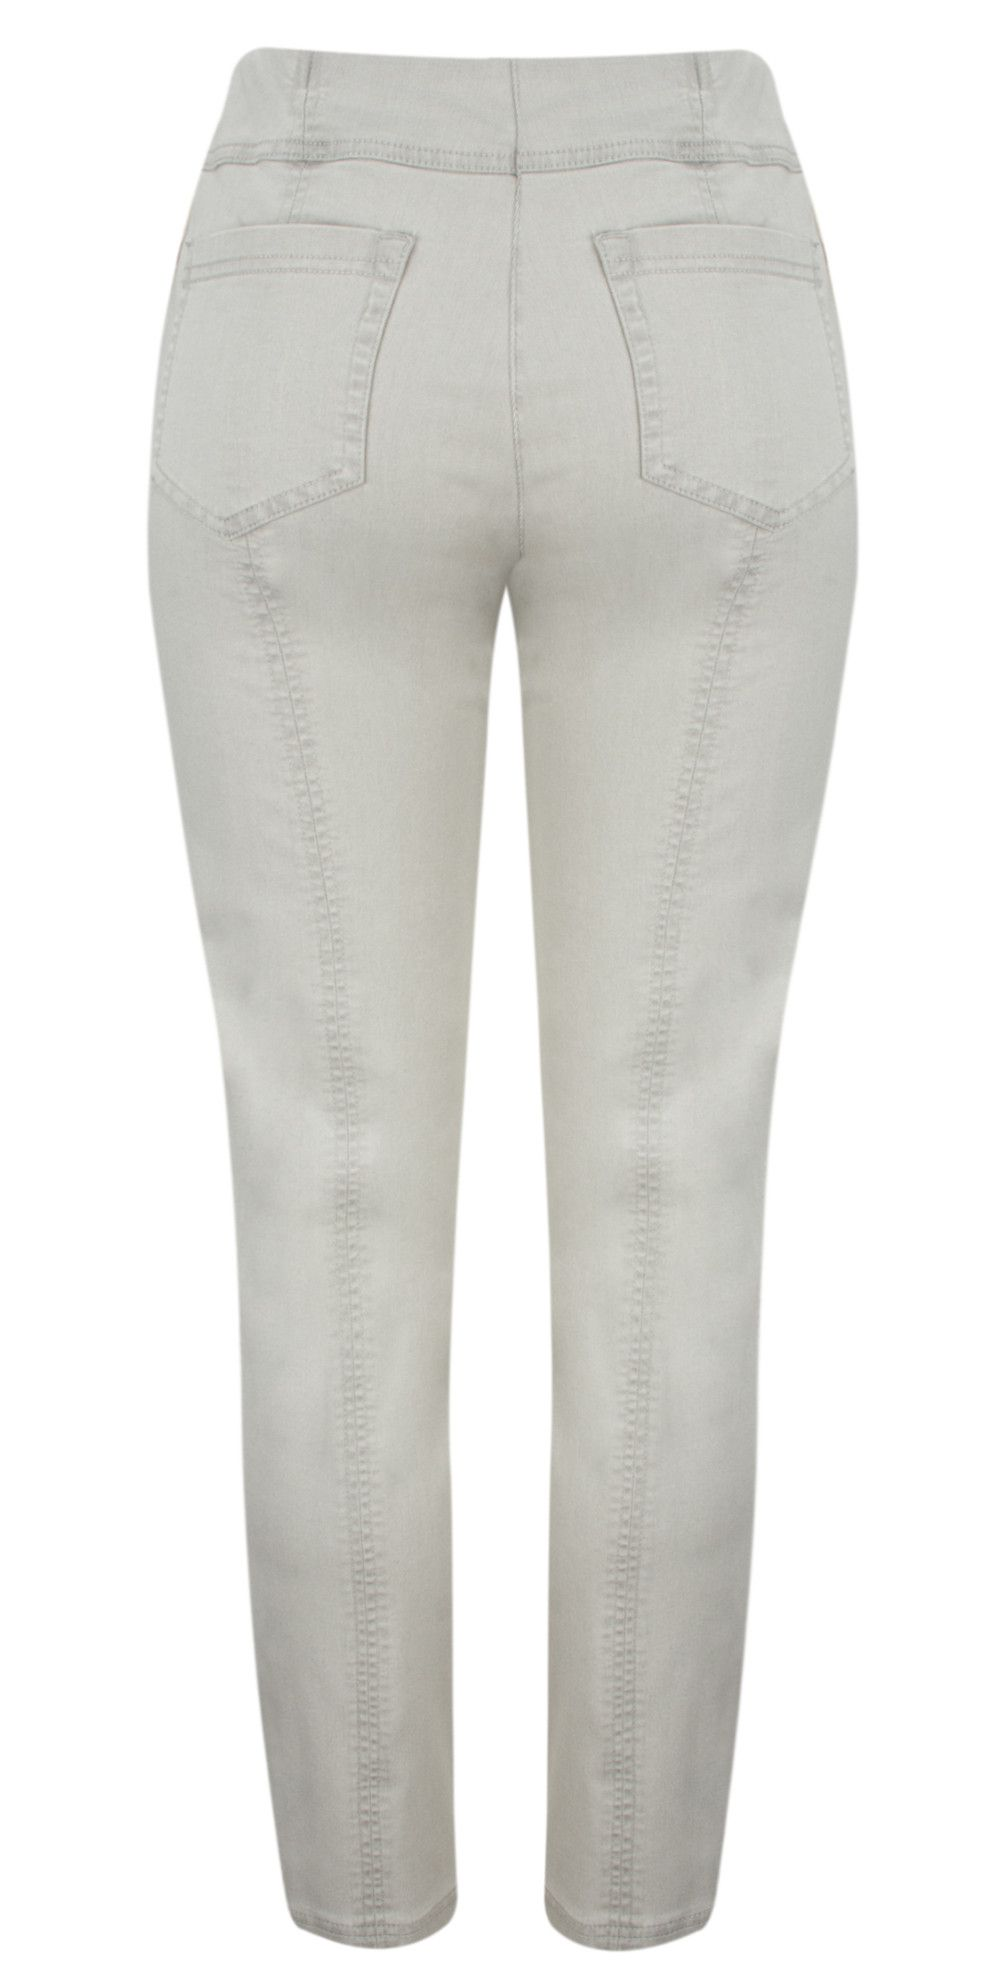 0823b80f976f Robell Trousers Bella Slim Fit Full Length Jean in Light Grey ...